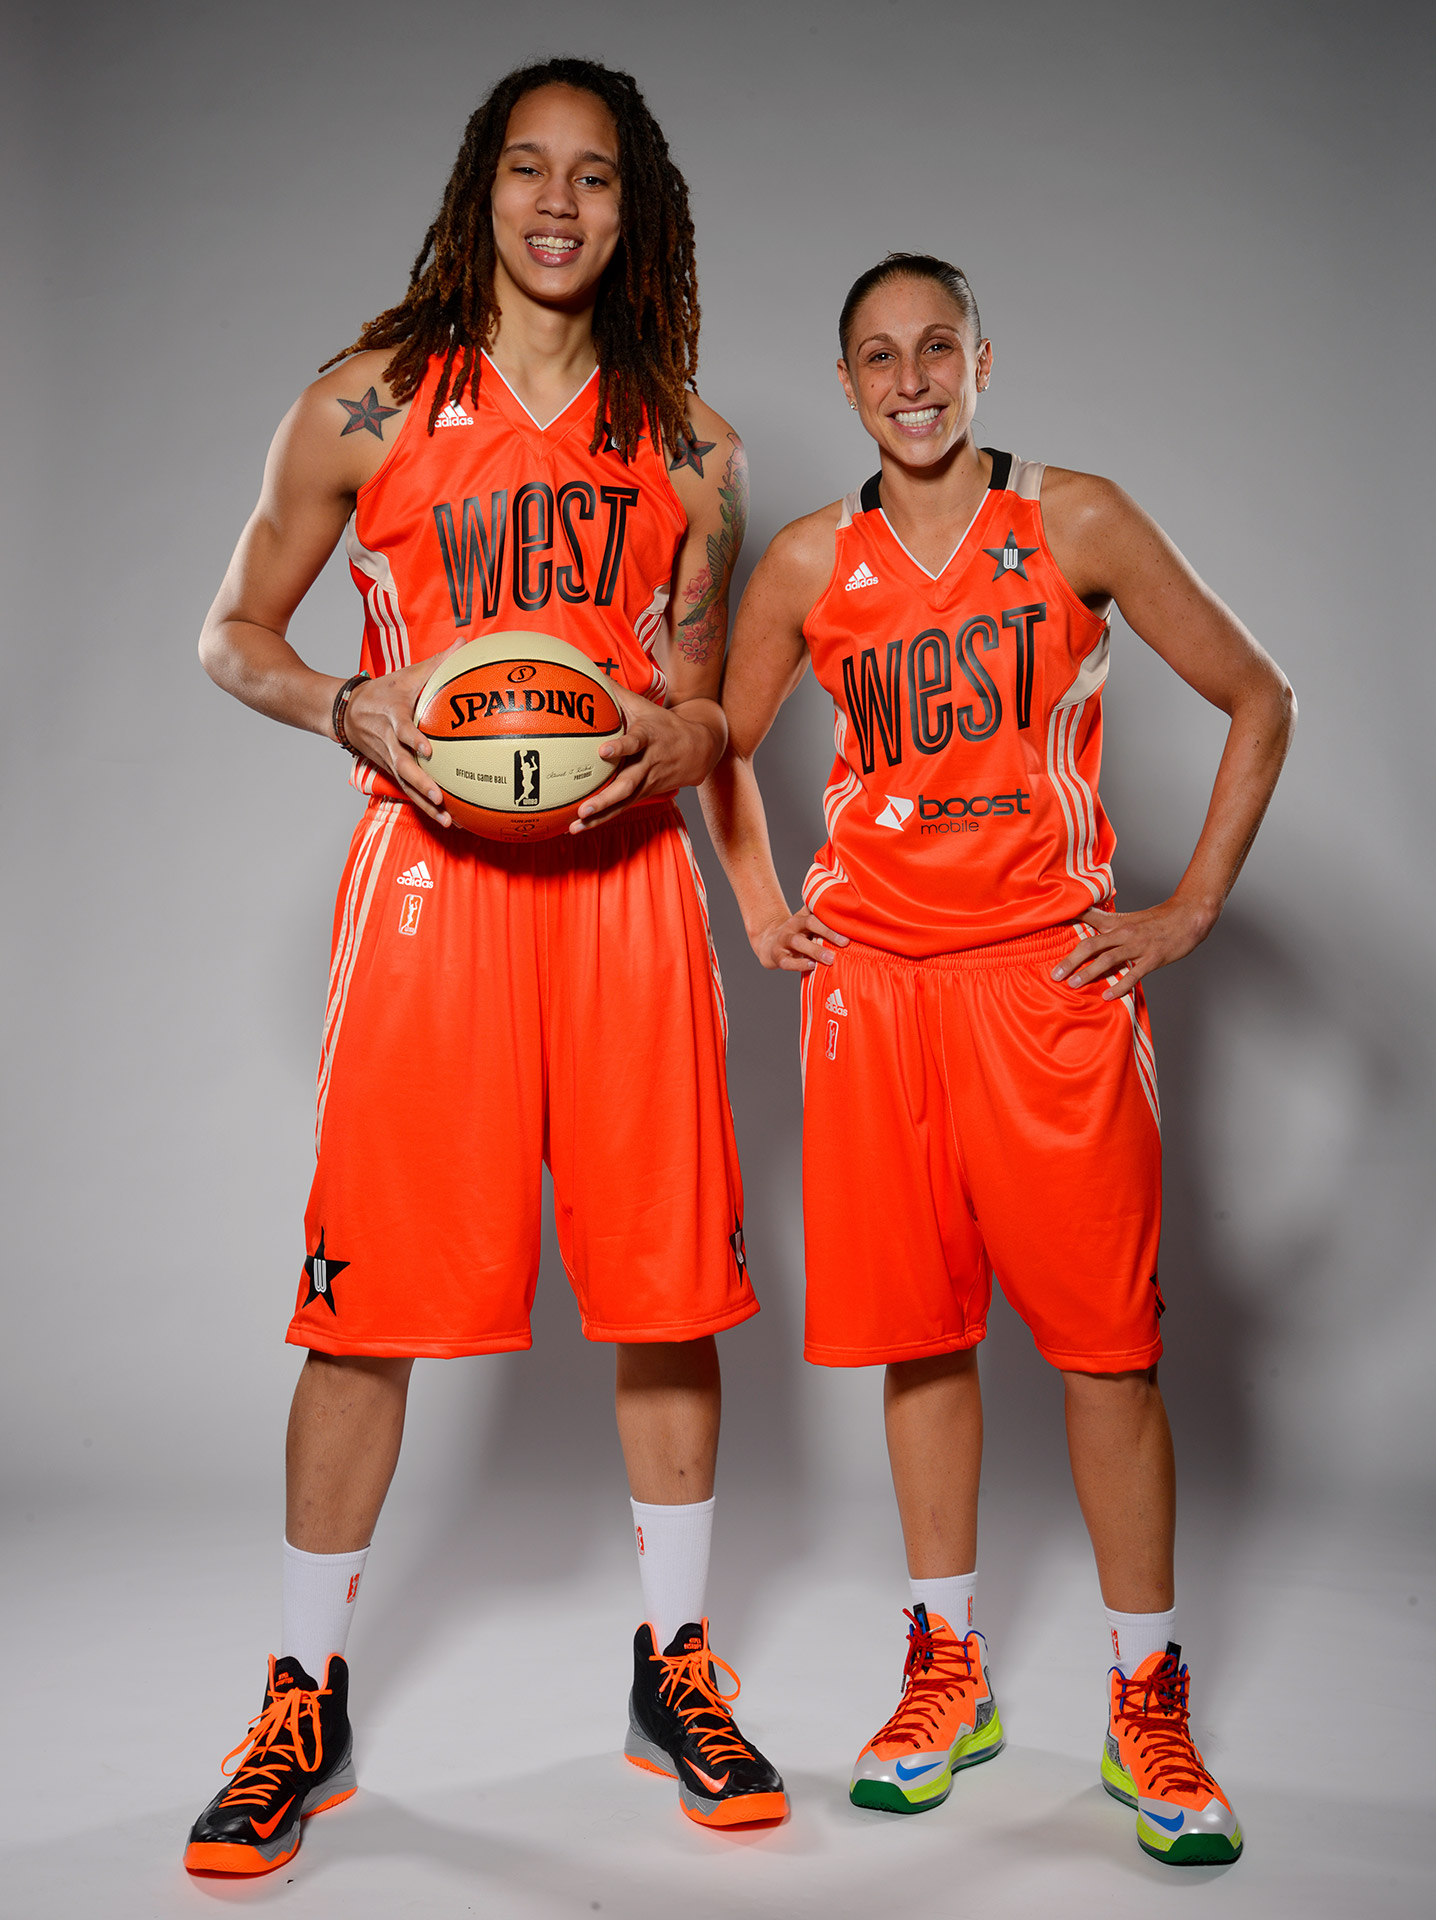 Pursuing Perfection Brittney Griner And Diana Taurasi Flashback Defining Moments Espnw